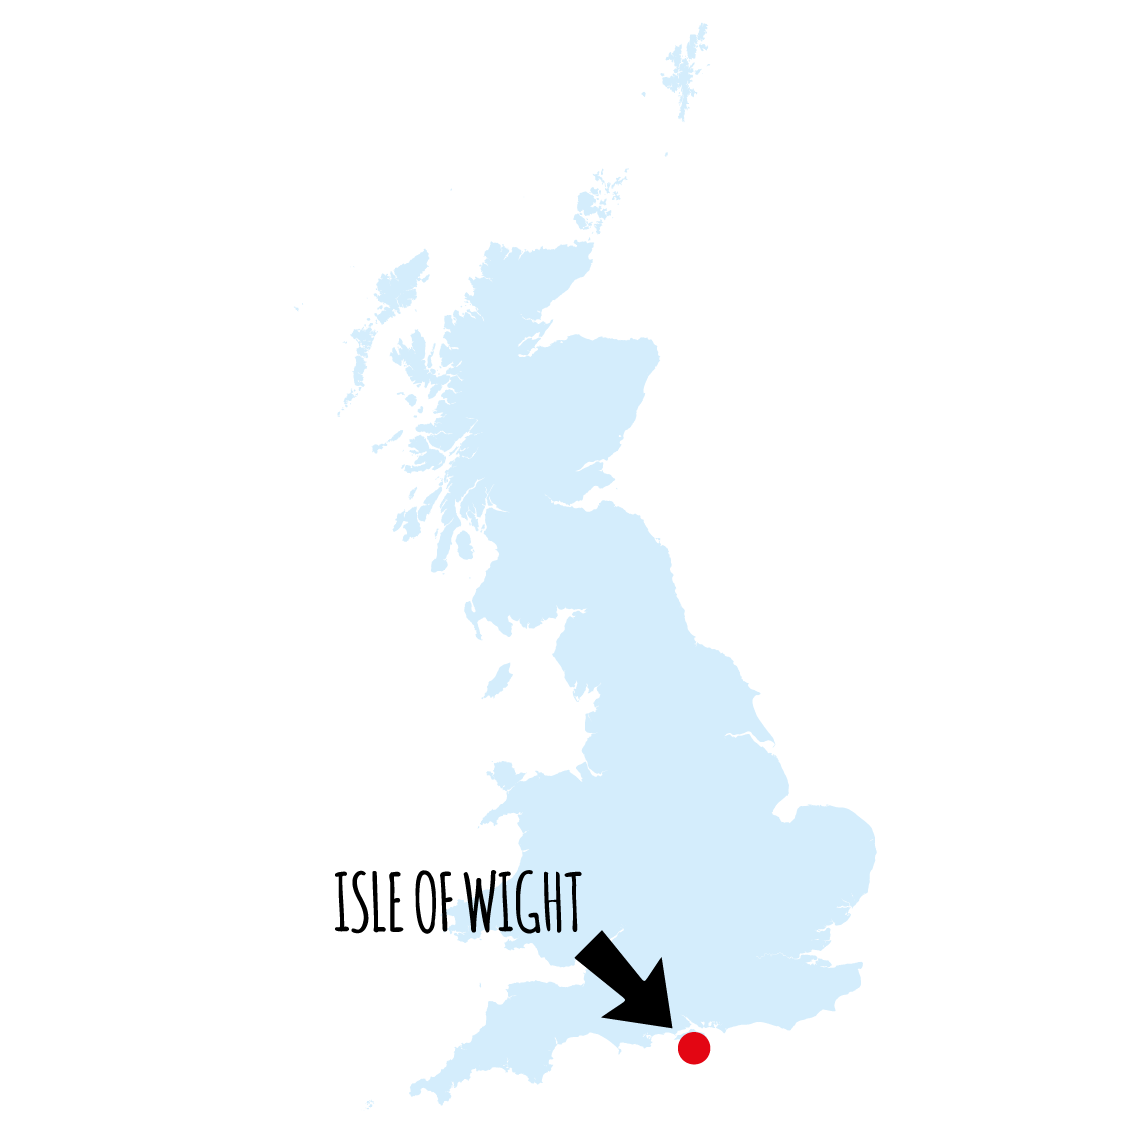 isleofwight-map.png